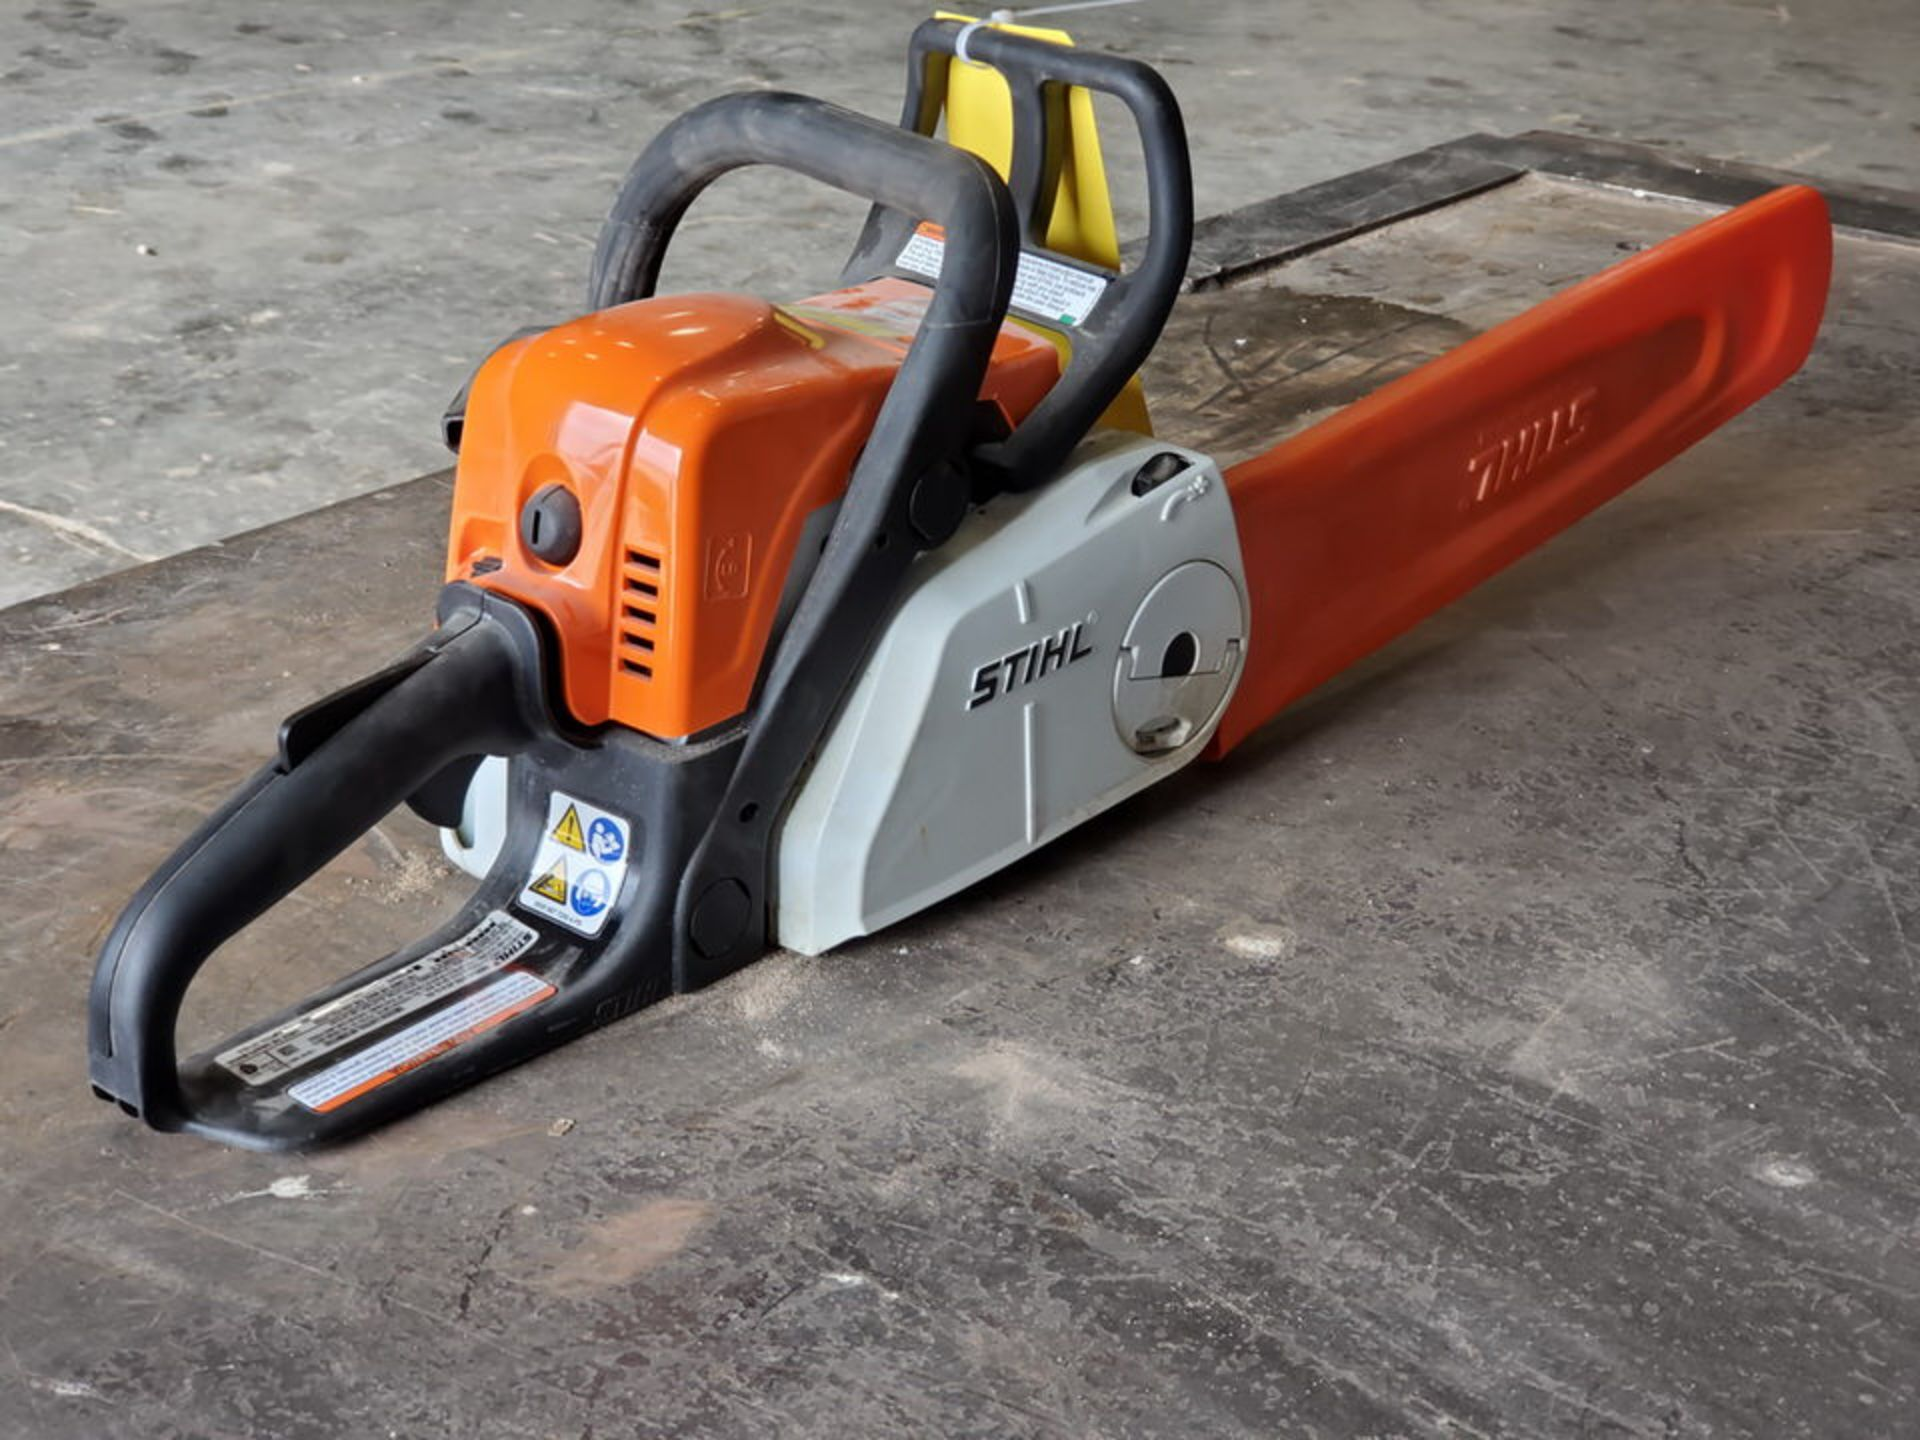 """Stihl 16"""" Gas Powered Chain Saw - Image 2 of 4"""